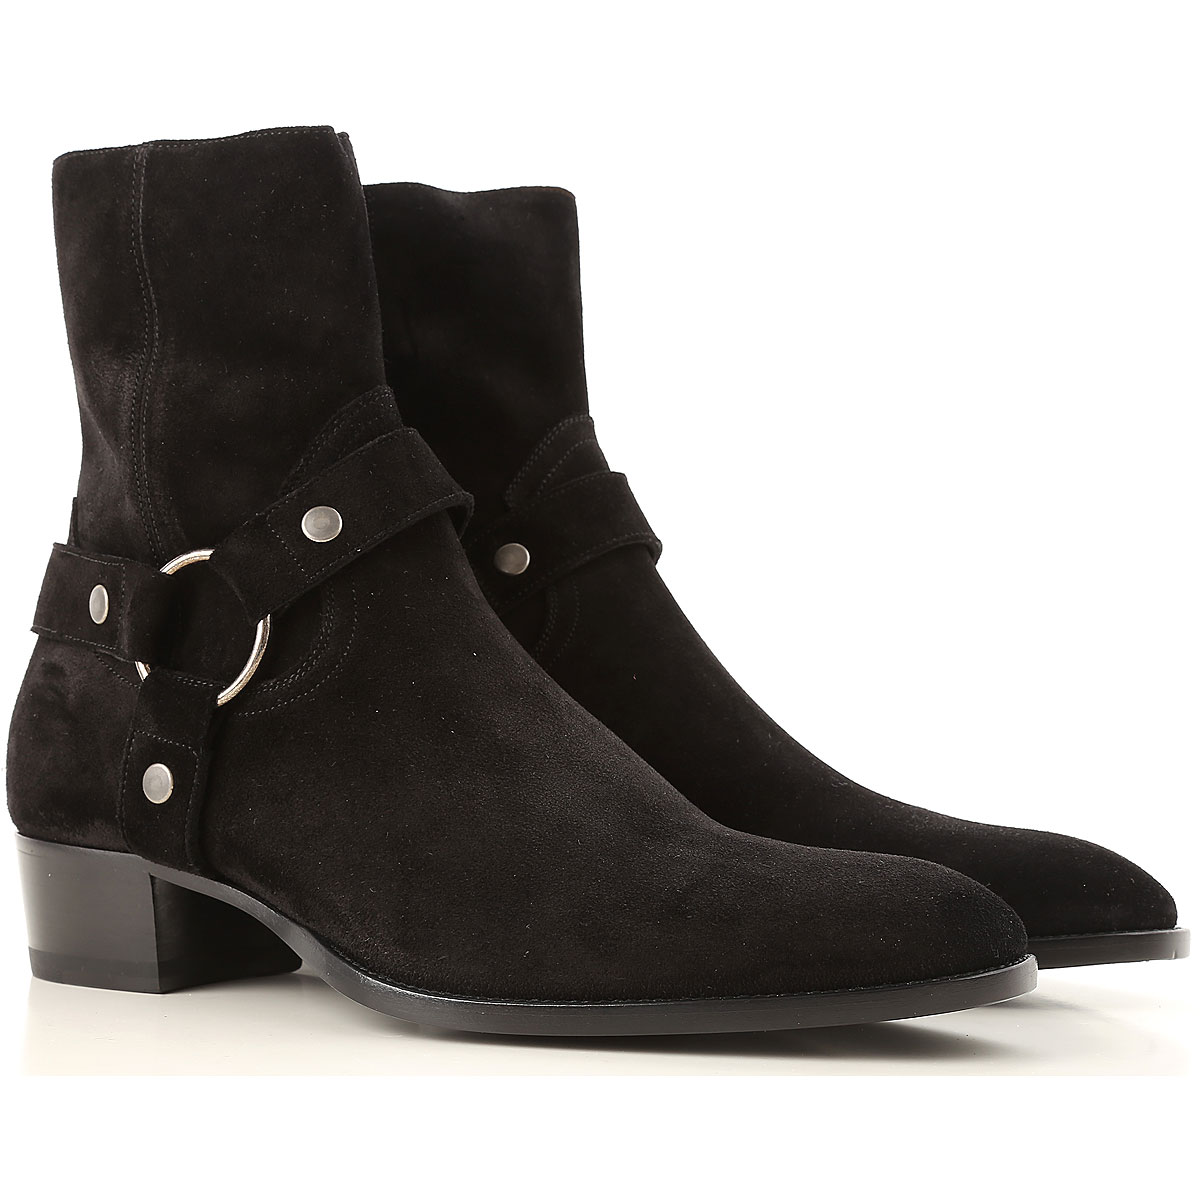 Image of Yves Saint Laurent Boots for Men, Booties, Black, Suede leather, 2017, 10 10.25 10.5 7.5 7.75 8 8.5 9 9.5